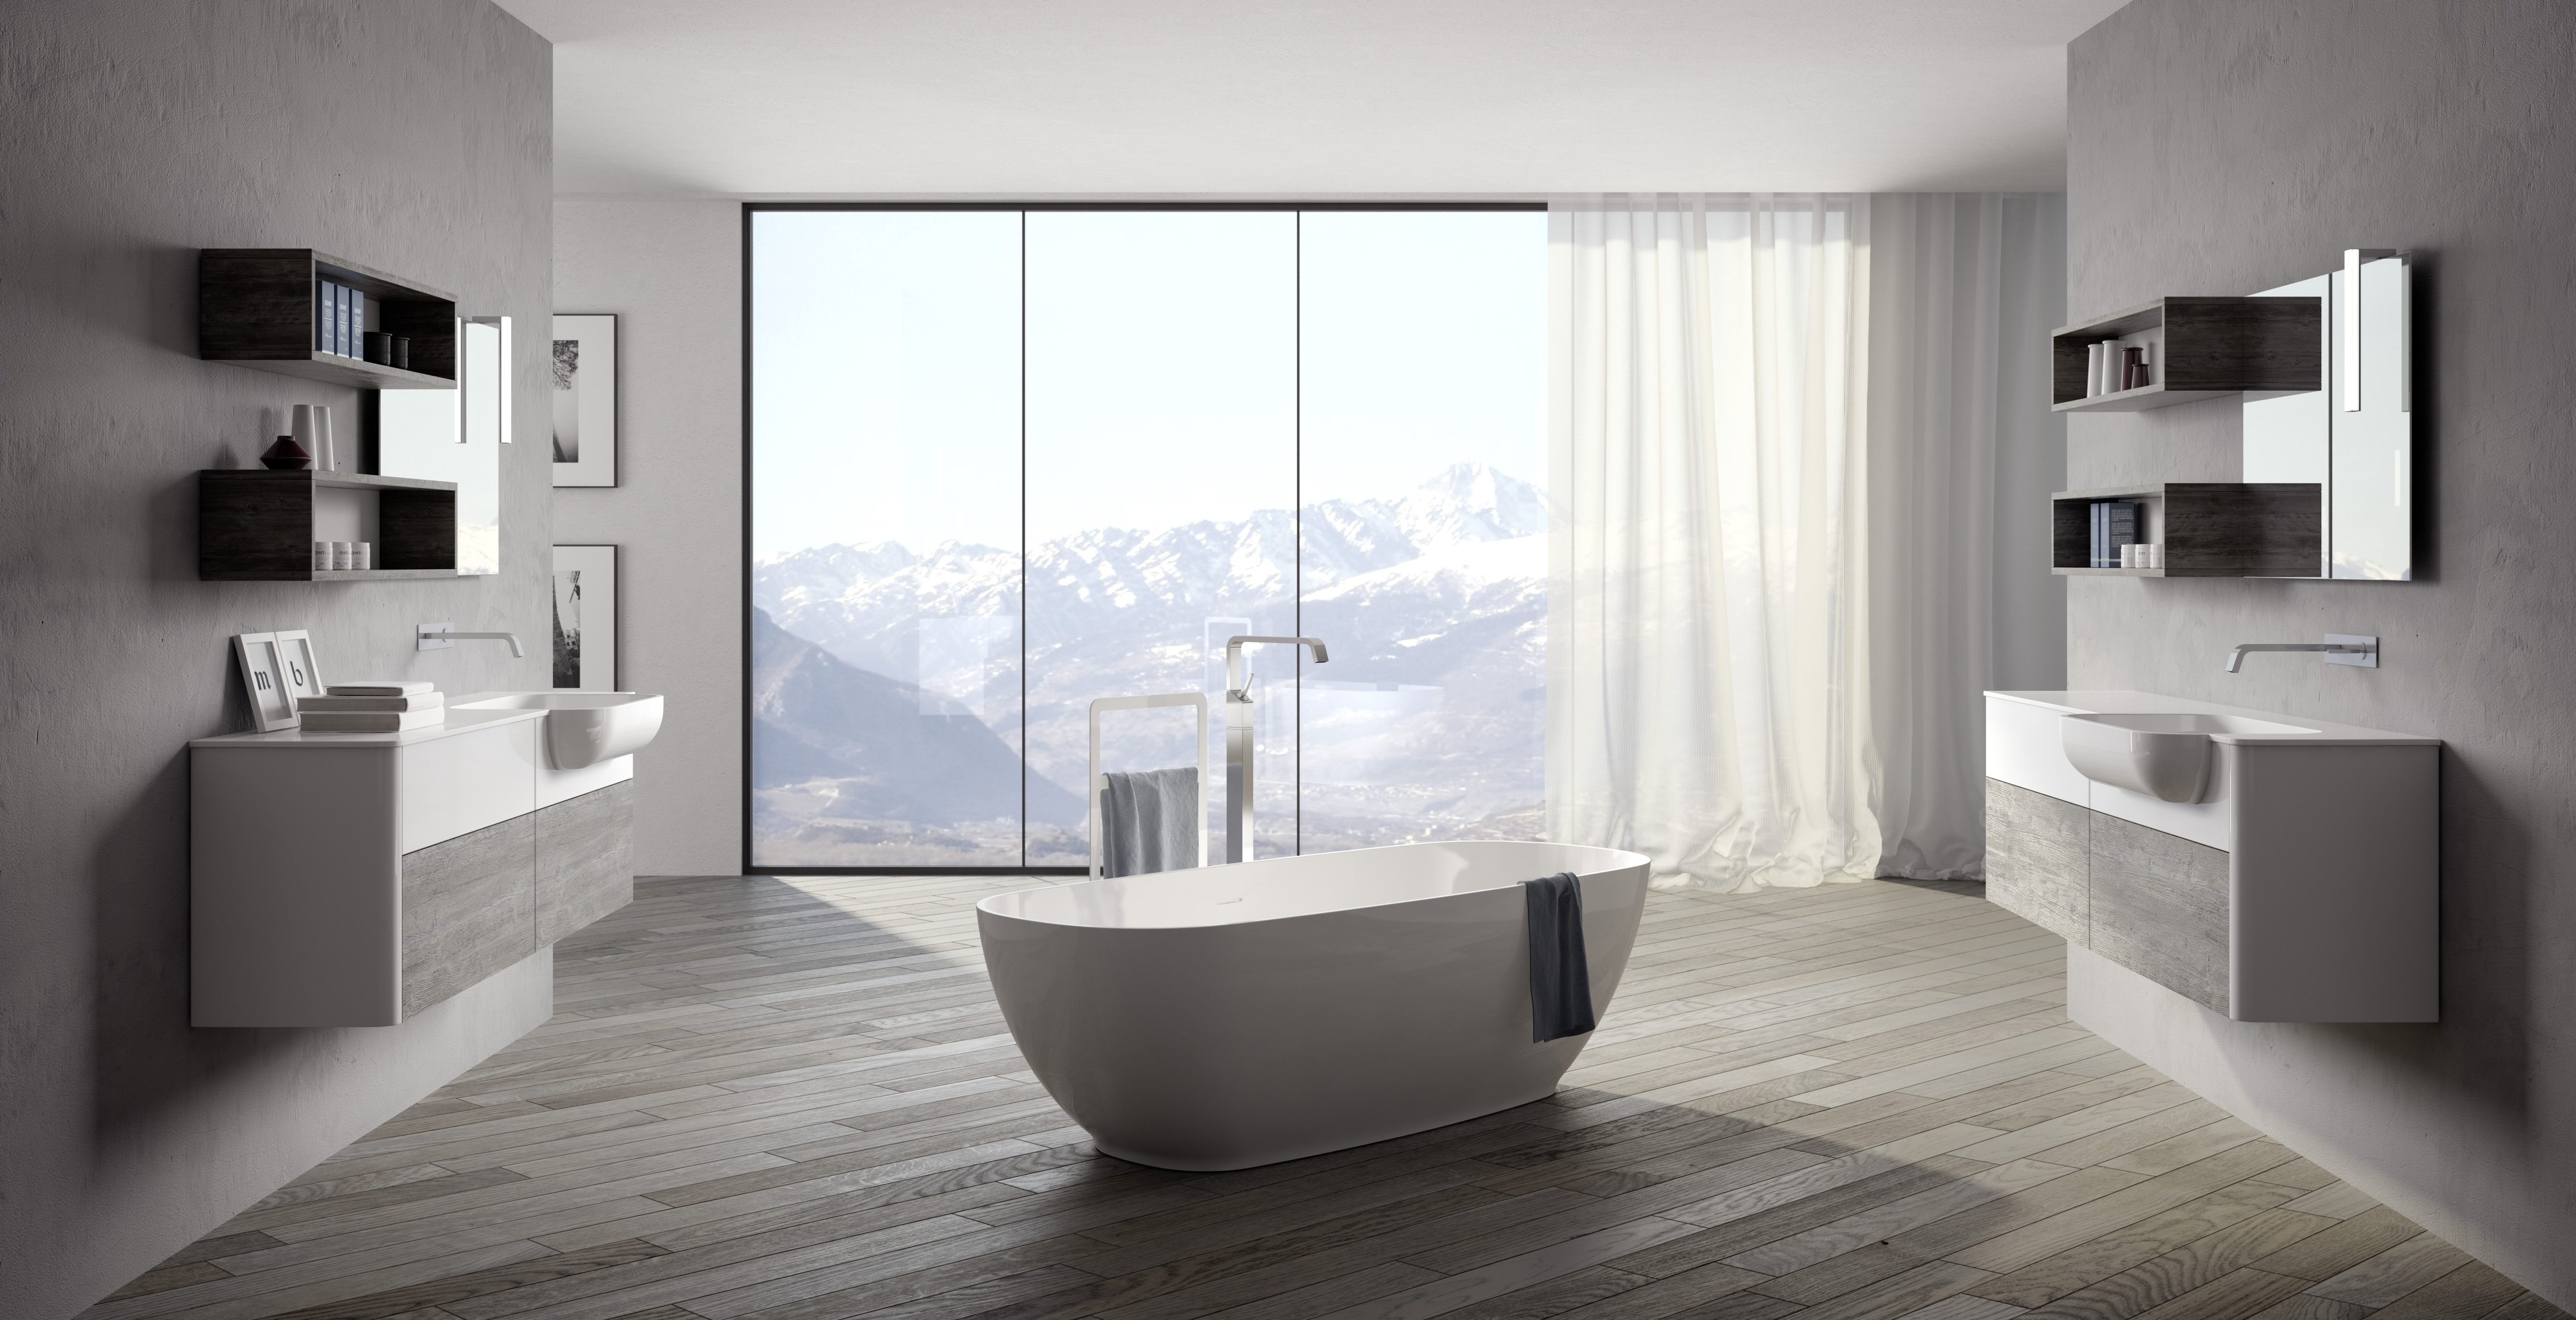 Wide And Panoramic Bath Room With Two ZEUS Furniture With Rounded Sides.  The Lack Of Handles Gives A Minimalist Design Style To The Environment.